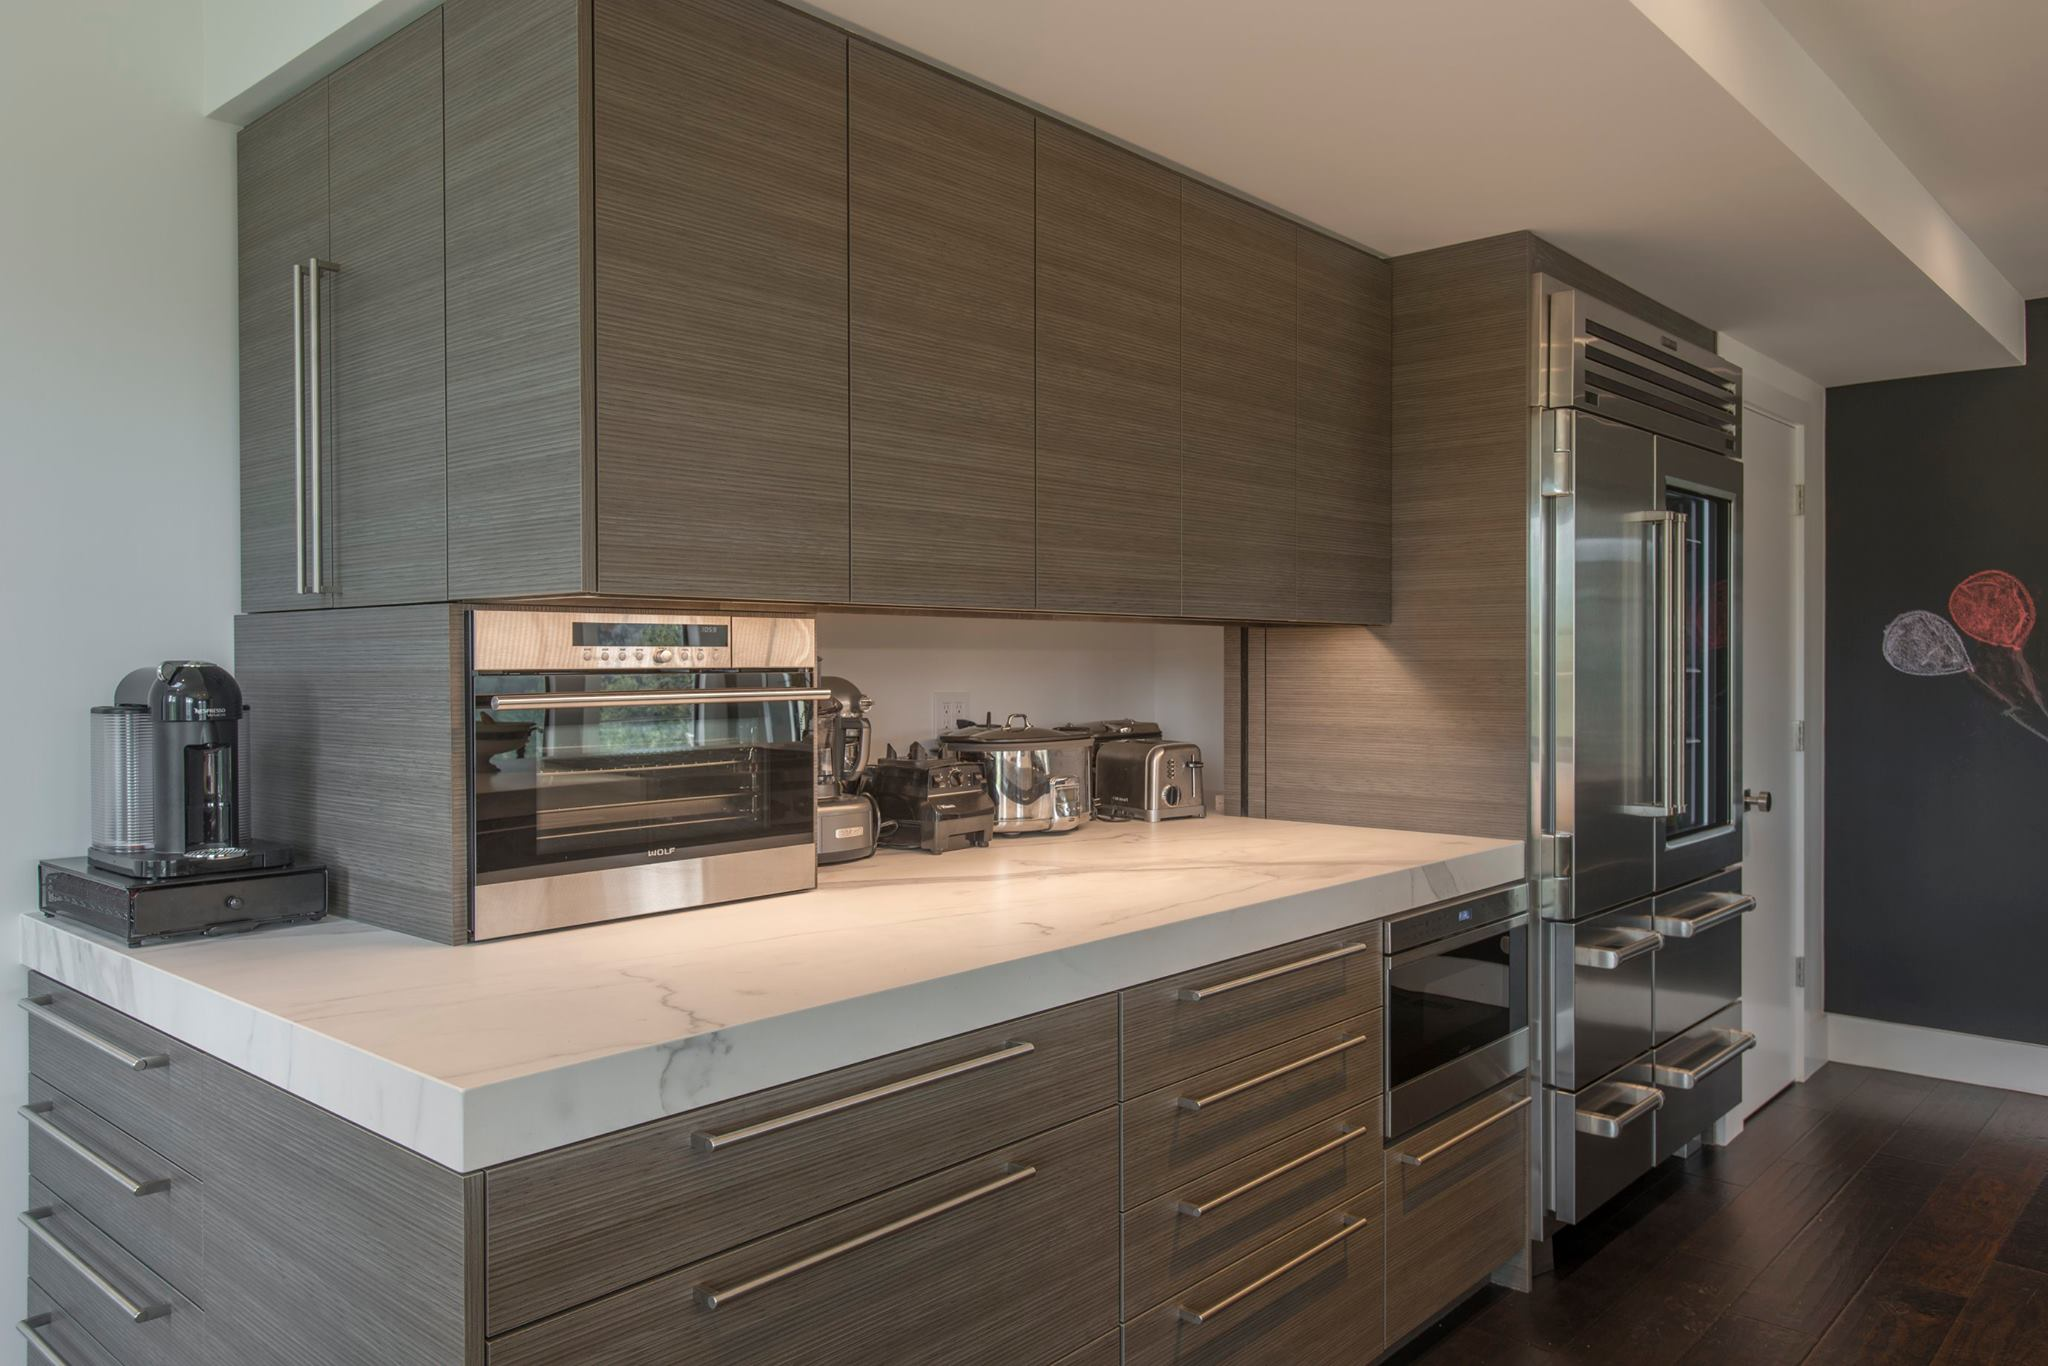 fm-distributing-neolith-classtone-estatuario-and-beton-modern-kitchen-side-coutner-with-applicances